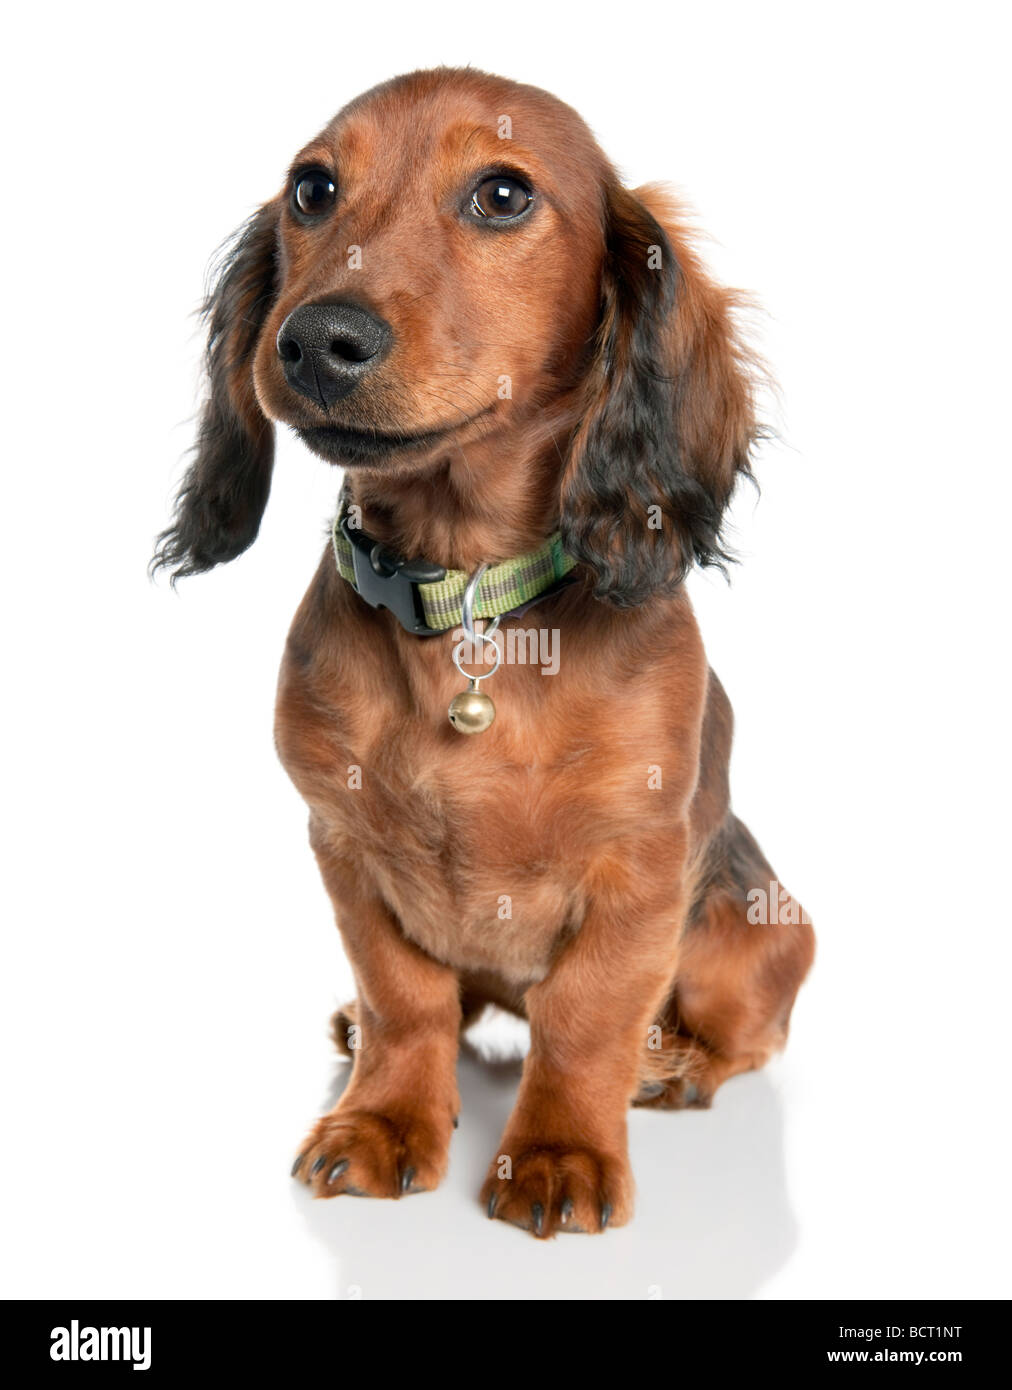 Dachshund dog, 7 years old, in front of a white background, studio shot - Stock Image